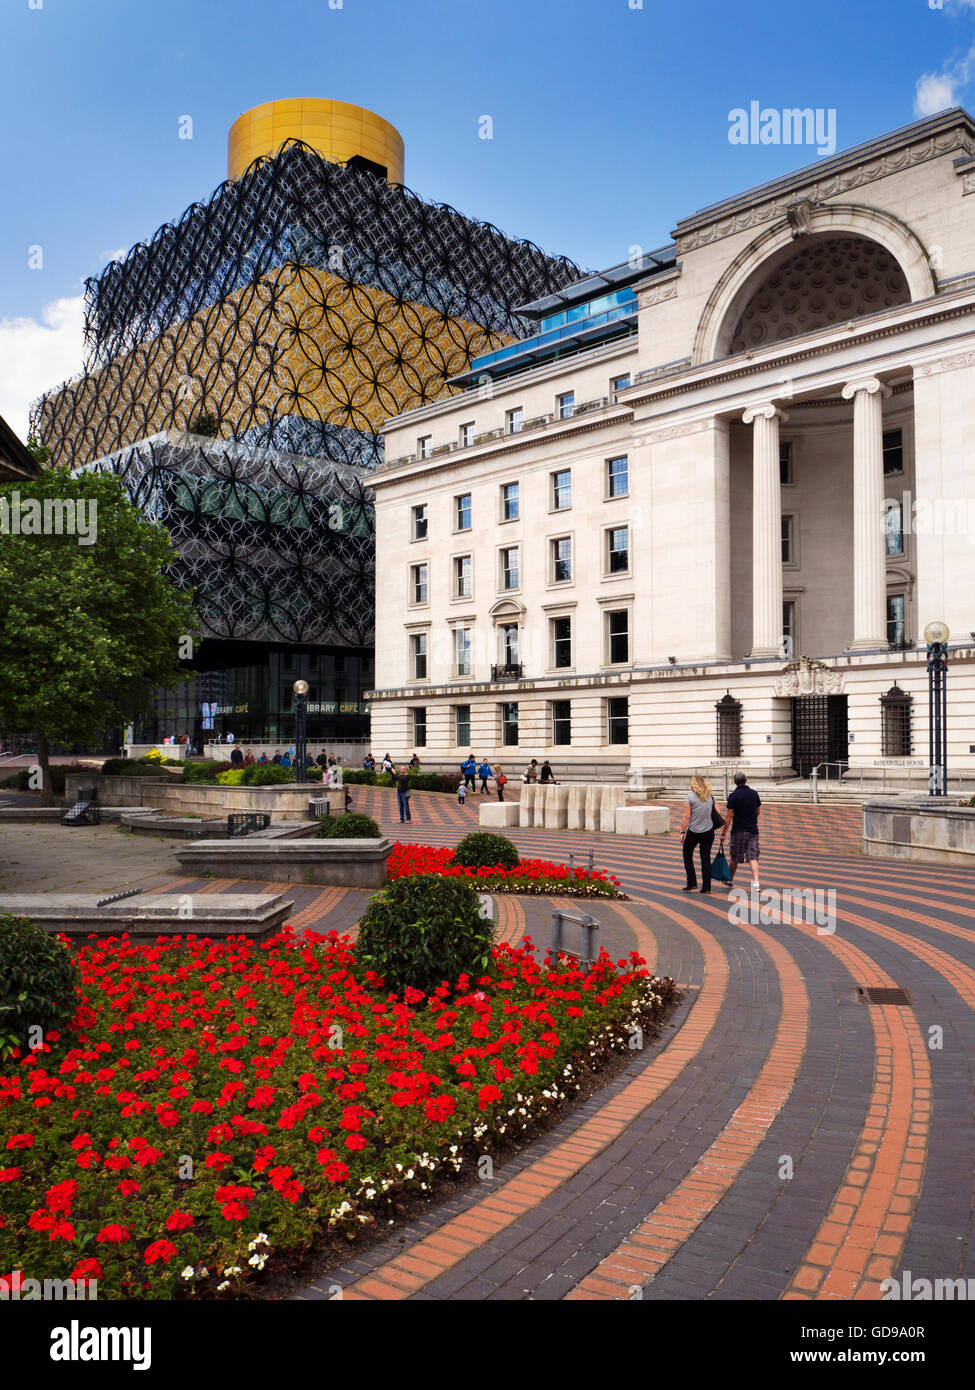 Baskerville House and Library of Birmingham in Centenary Square Birmingham West Midlands England - Stock Image